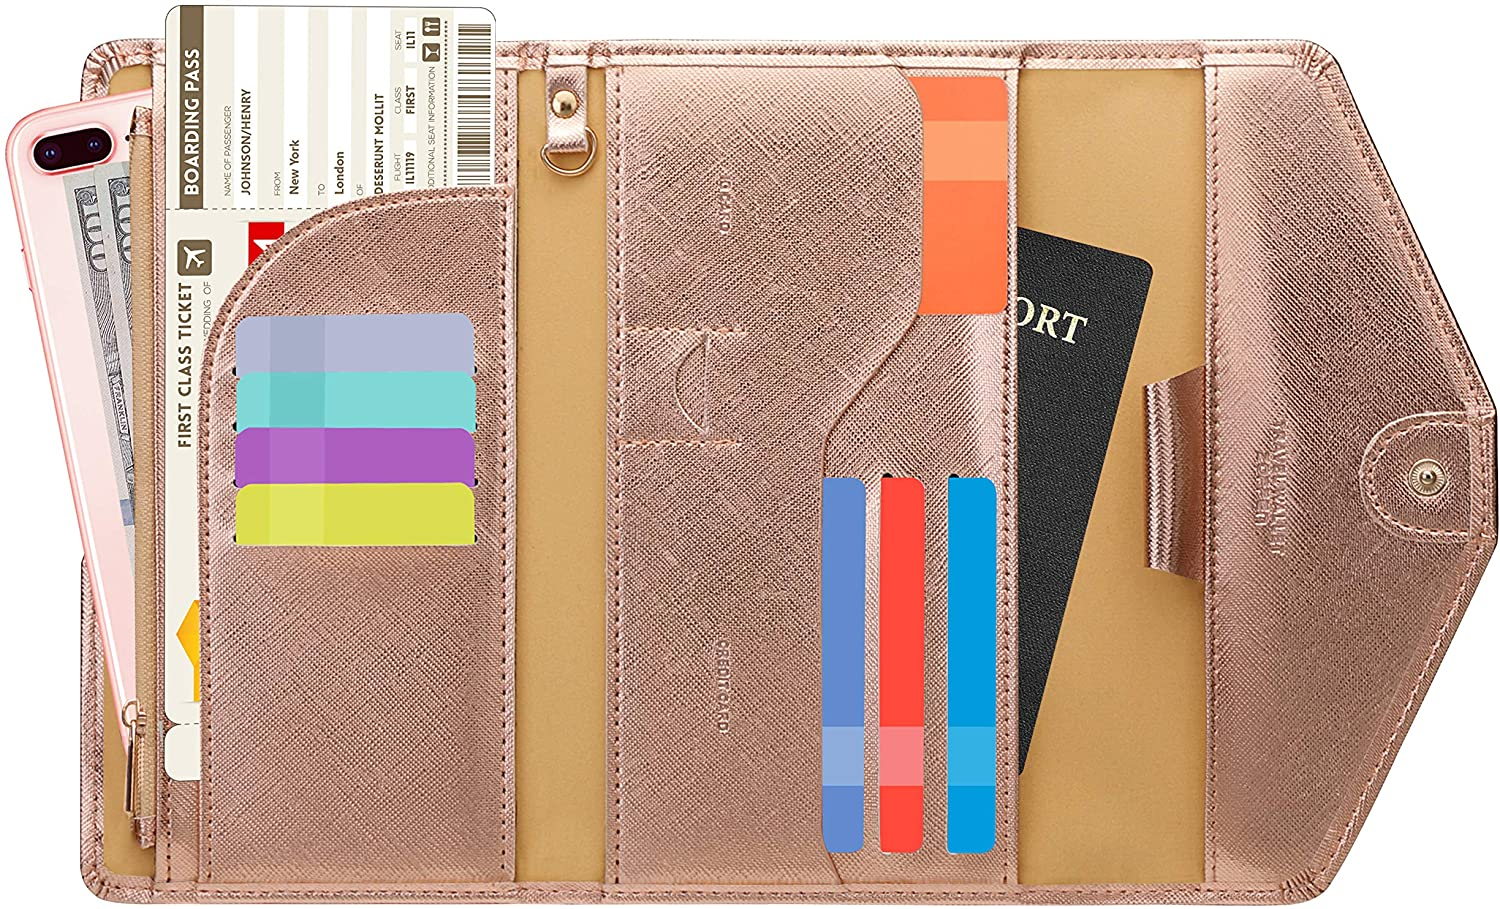 Zoppen Multi-Purpose RFID Passport Wallet